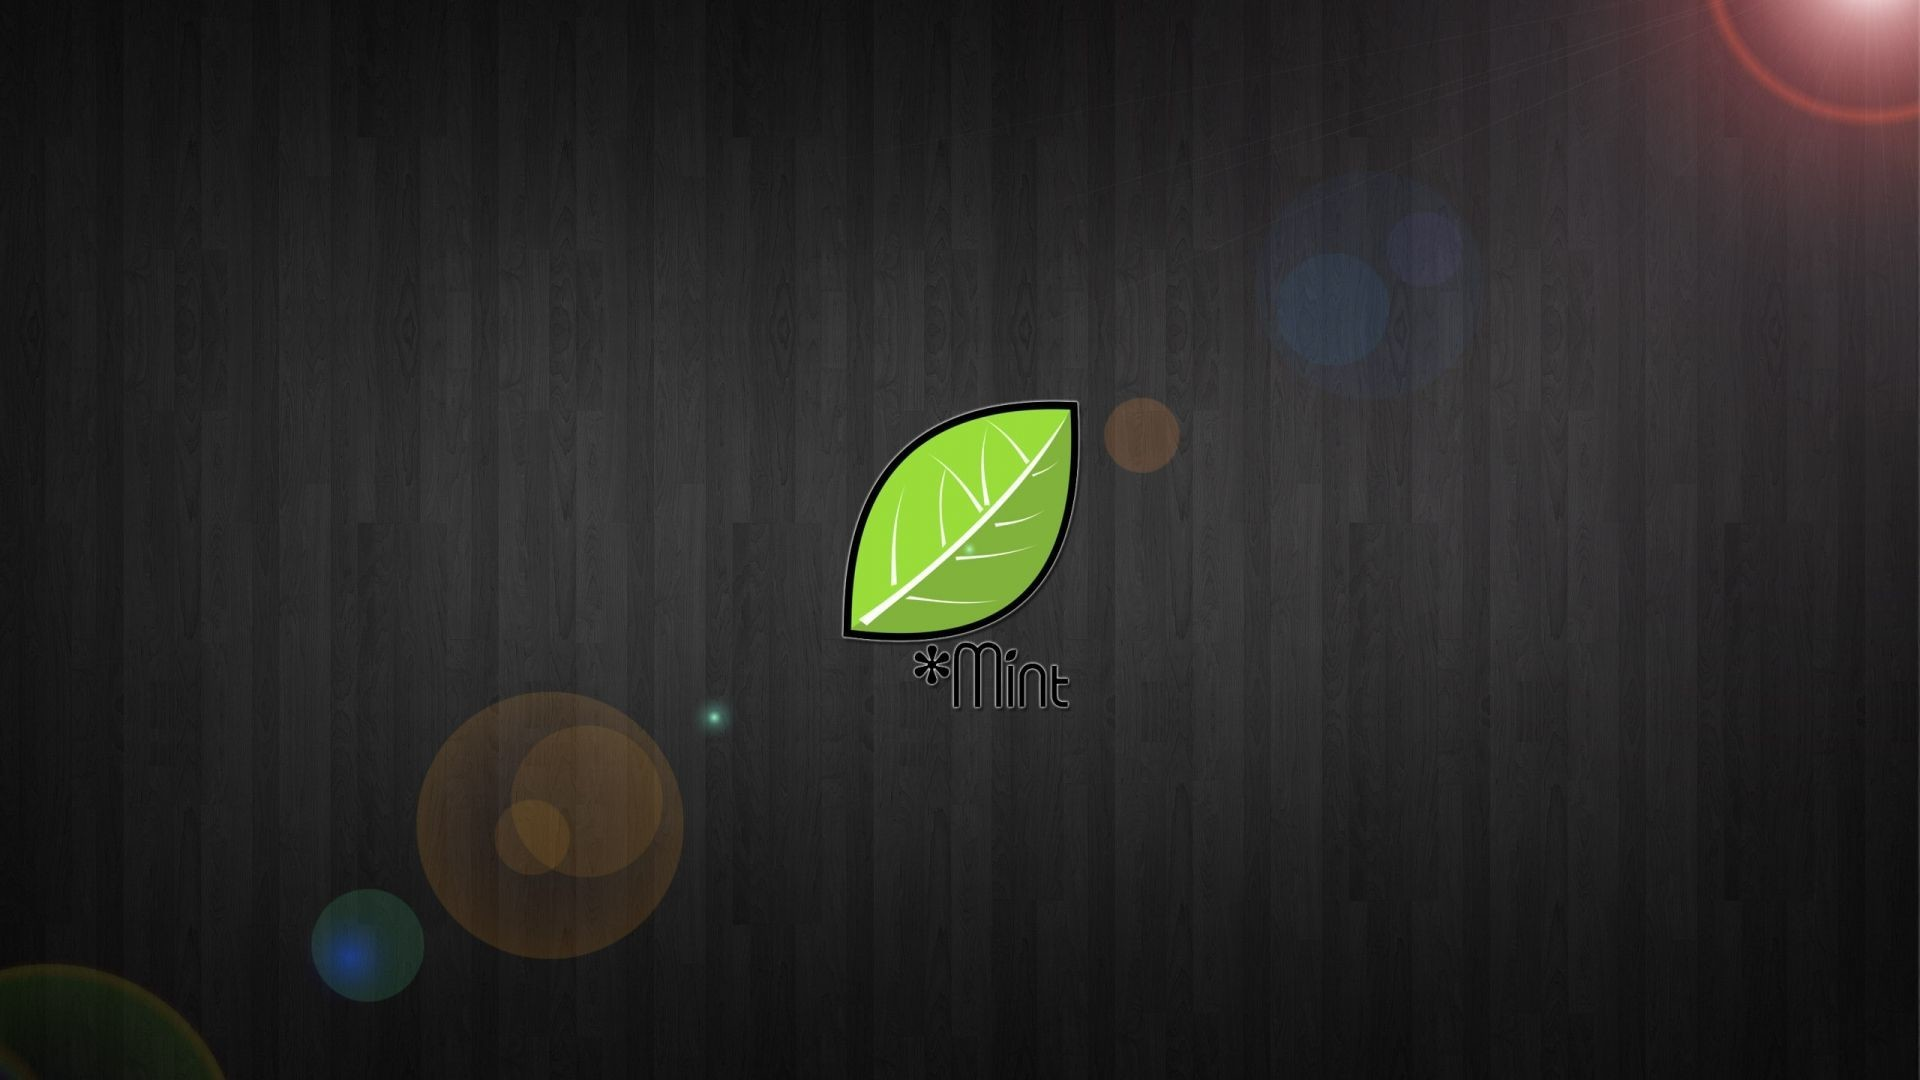 Res: 1920x1080, Res: 2560x1920,